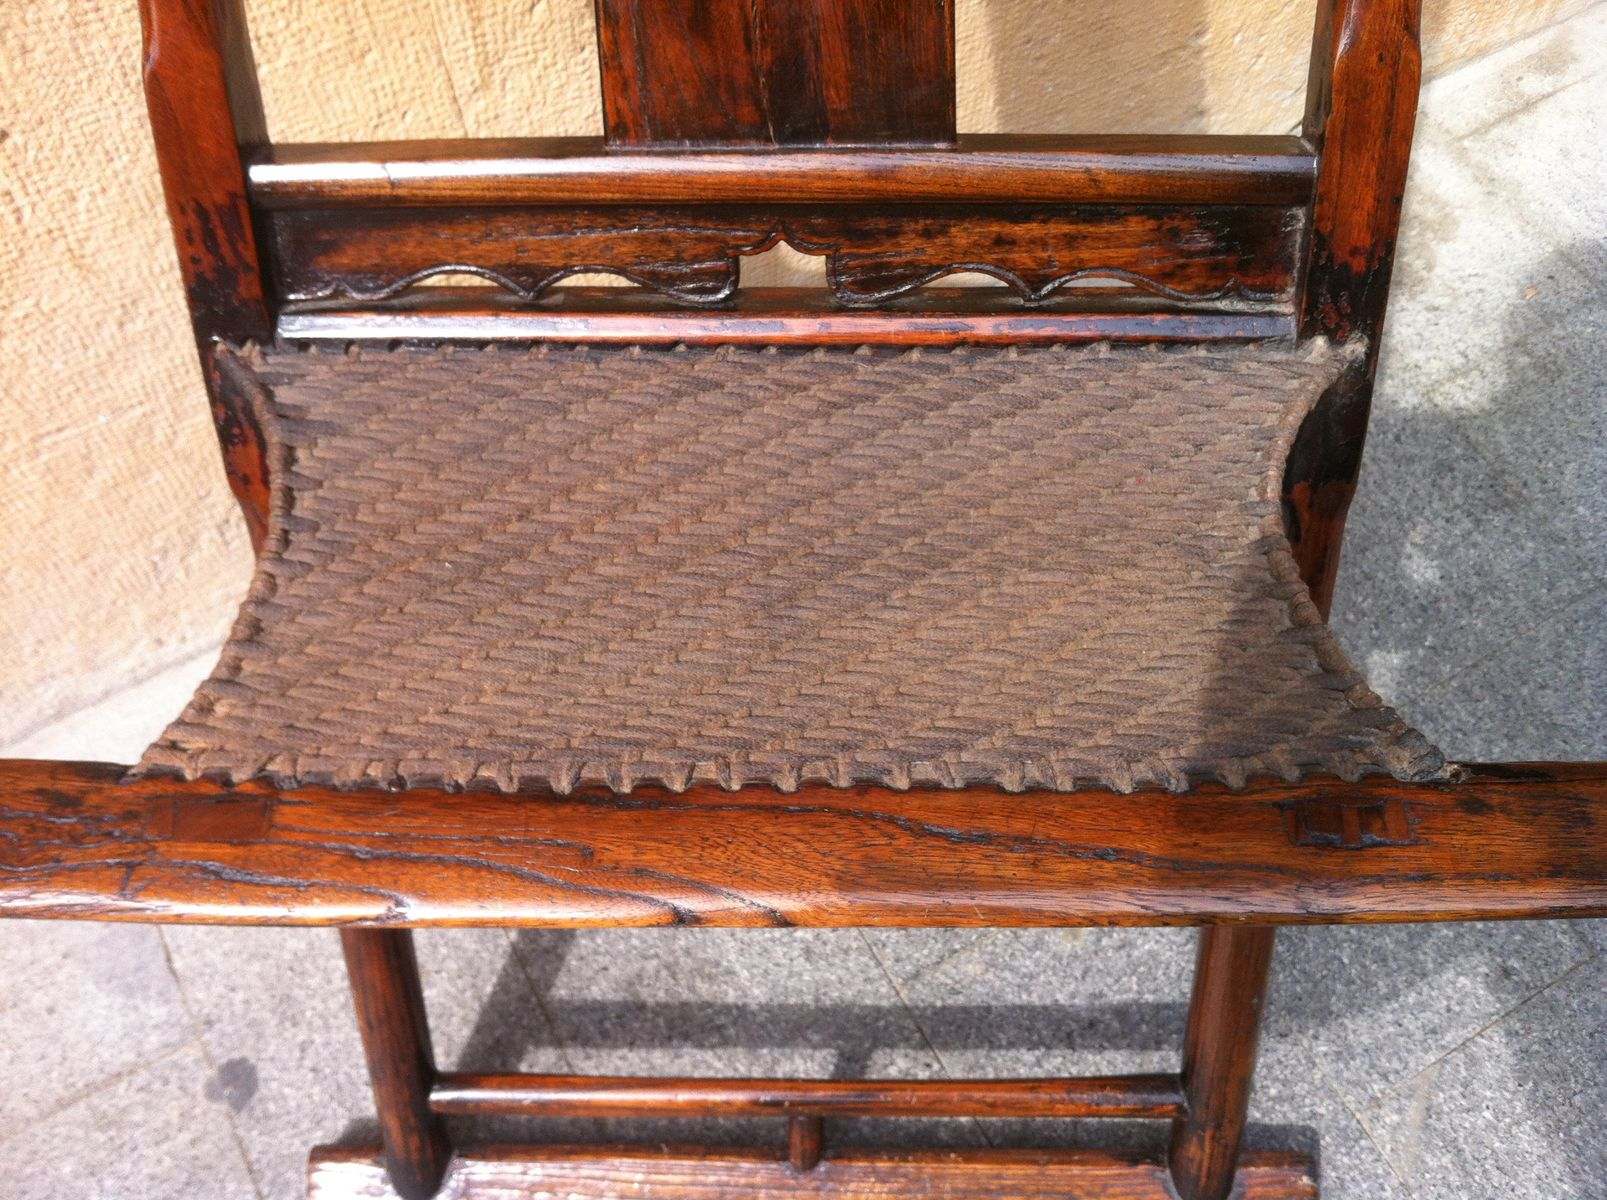 Chinese Qing Dynasty Yoke Back Wooden Folding Chair 1900s for